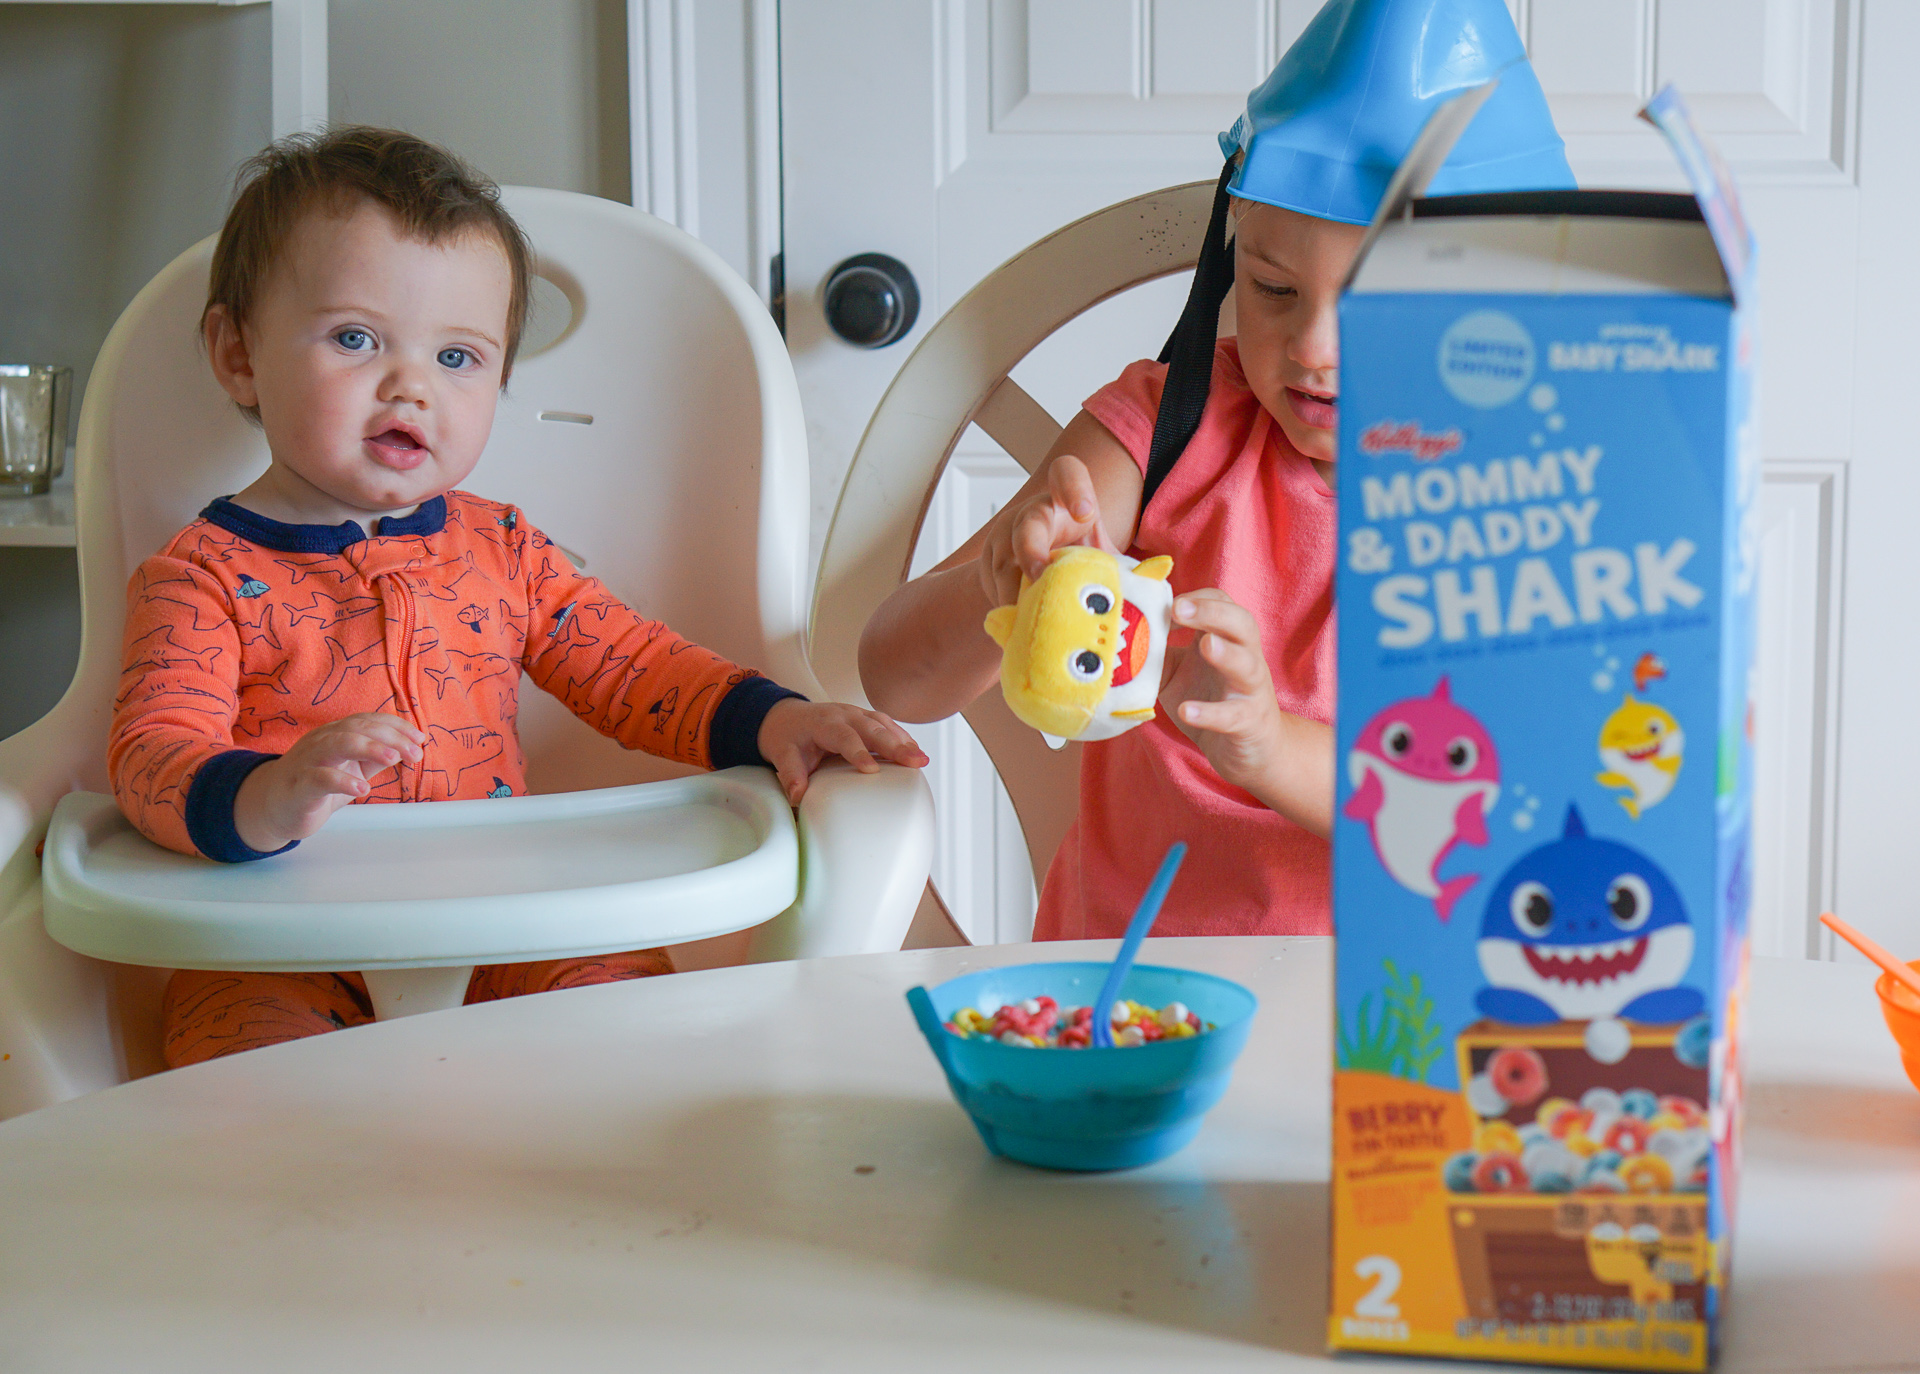 Baby Shark Cereal at Sam's Club – It's Fin-tastic! Kellogg's Breakfast Cereals